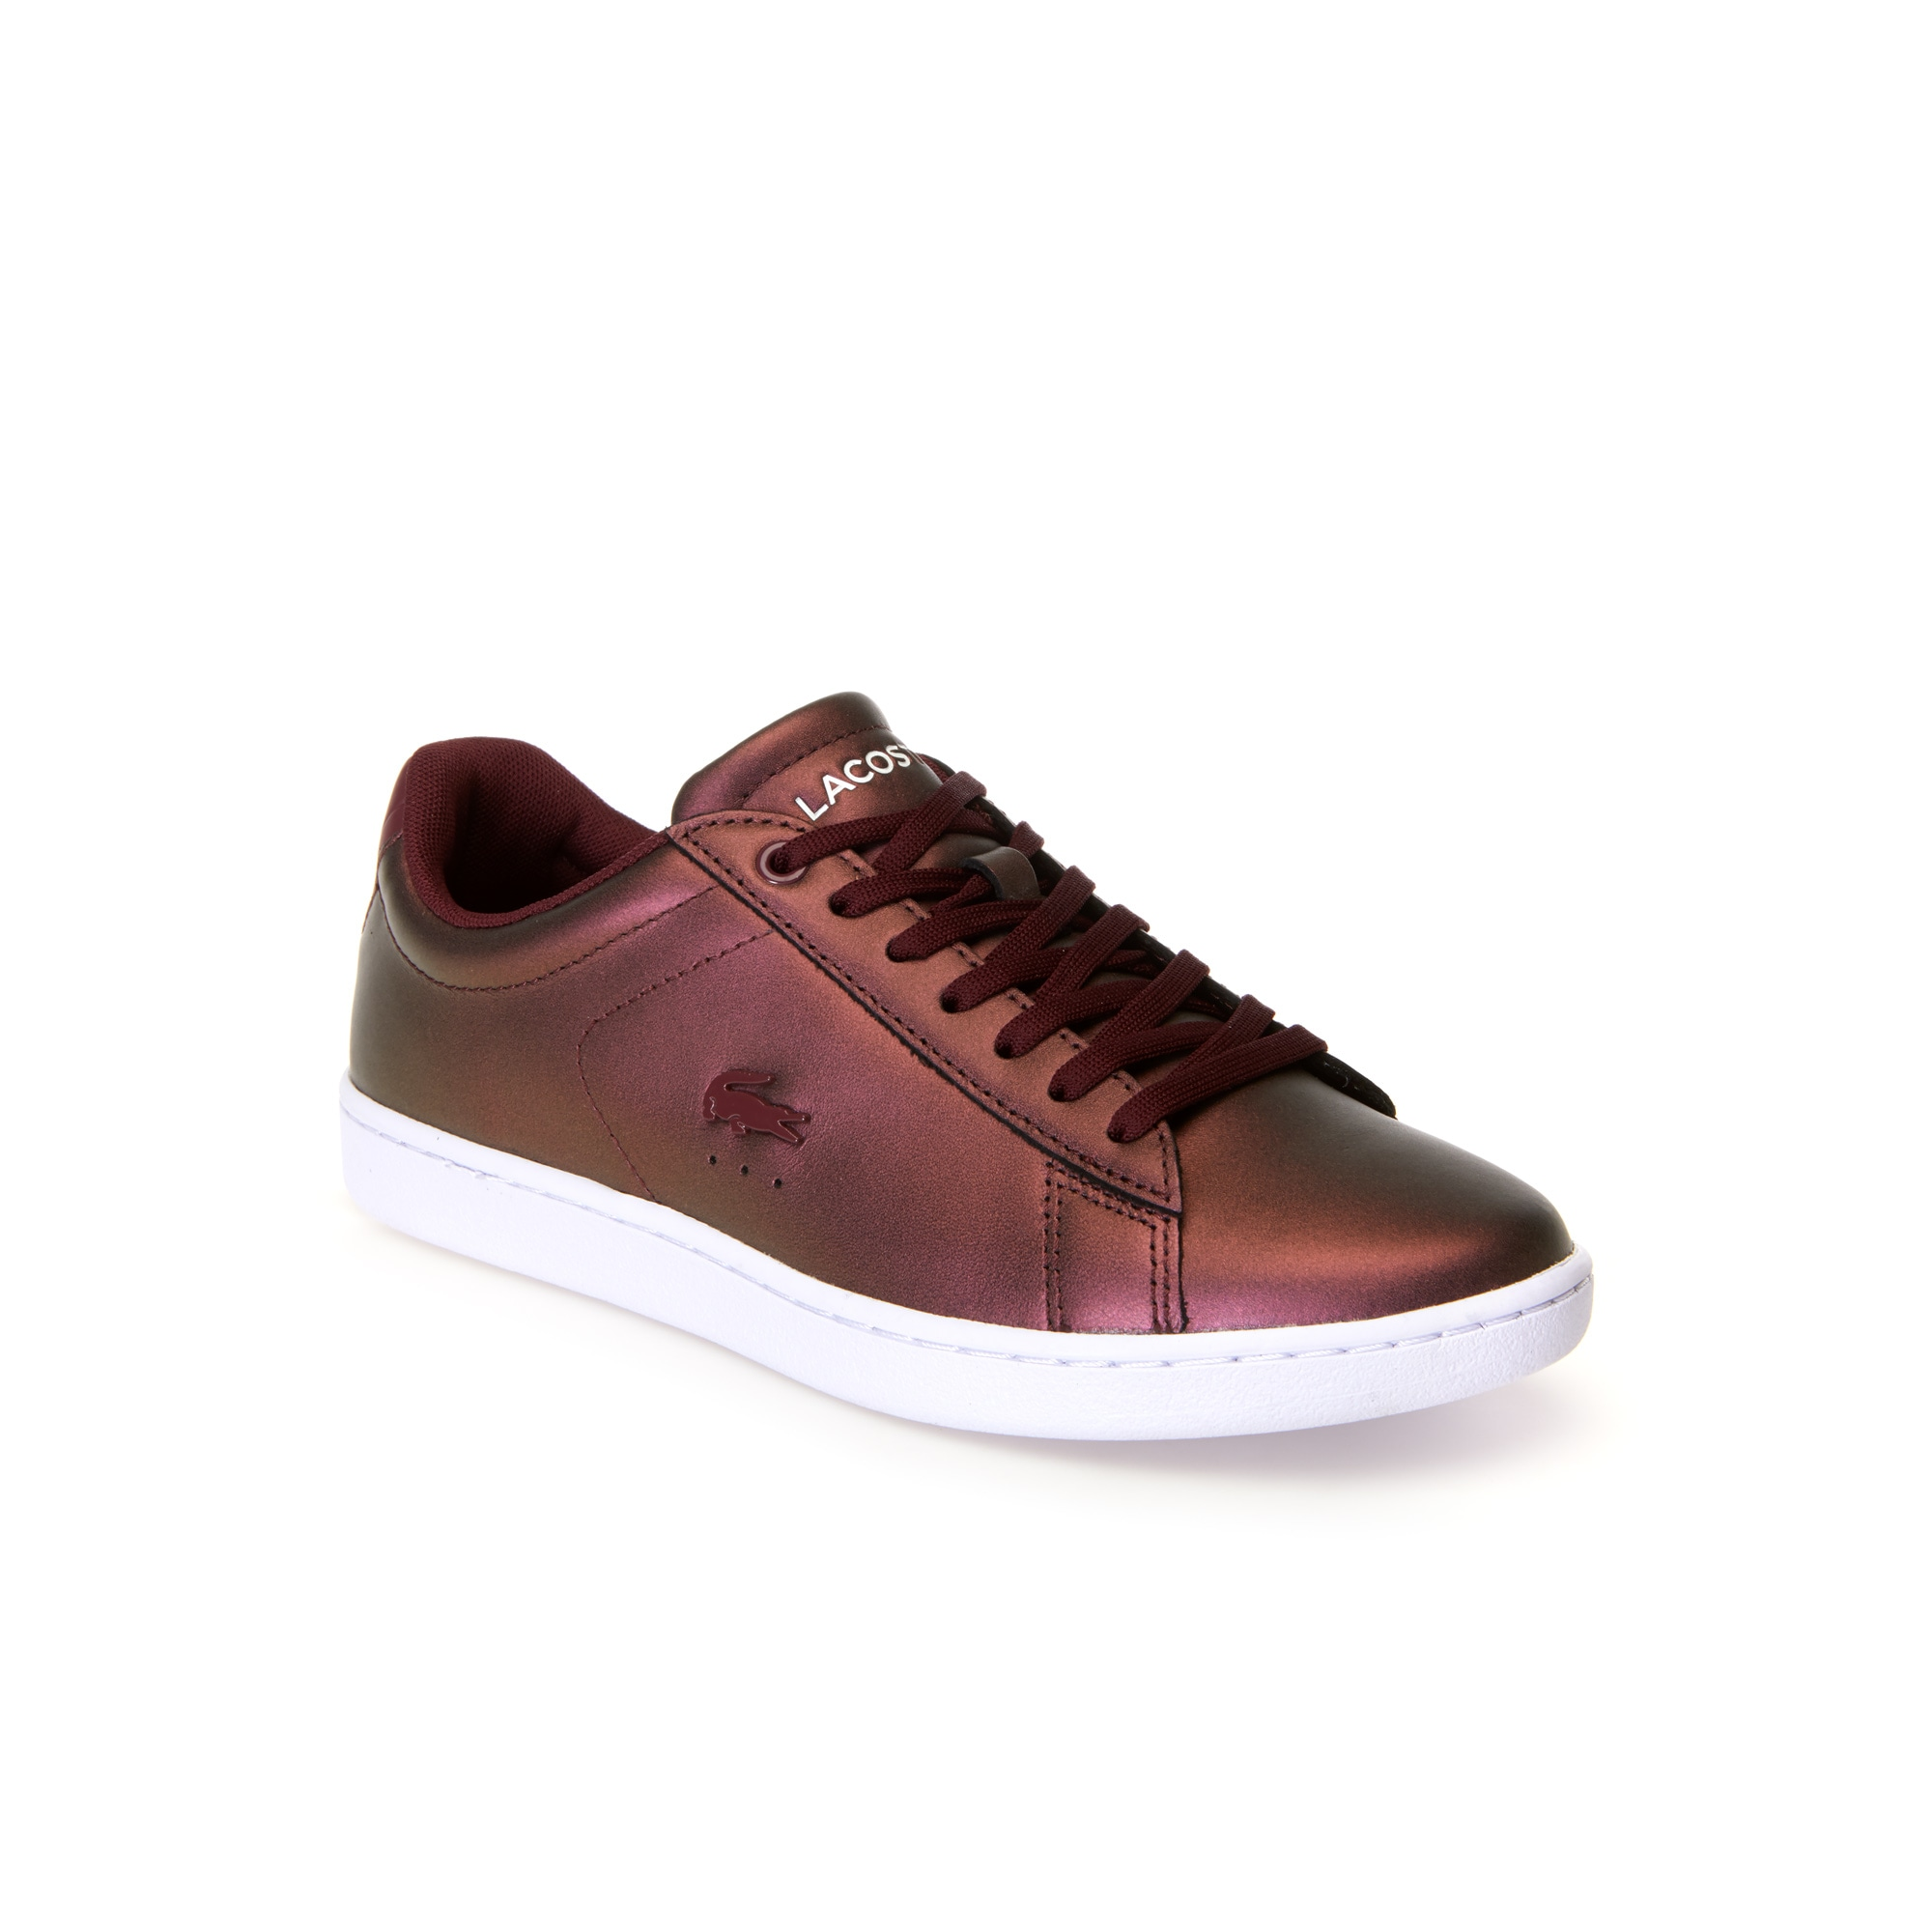 Lacoste Femme Chaussures Collection Chaussures Chaussures Lacoste Lacoste Femme Chaussures Collection Collection Femme Femme 1Crz0WnXxC